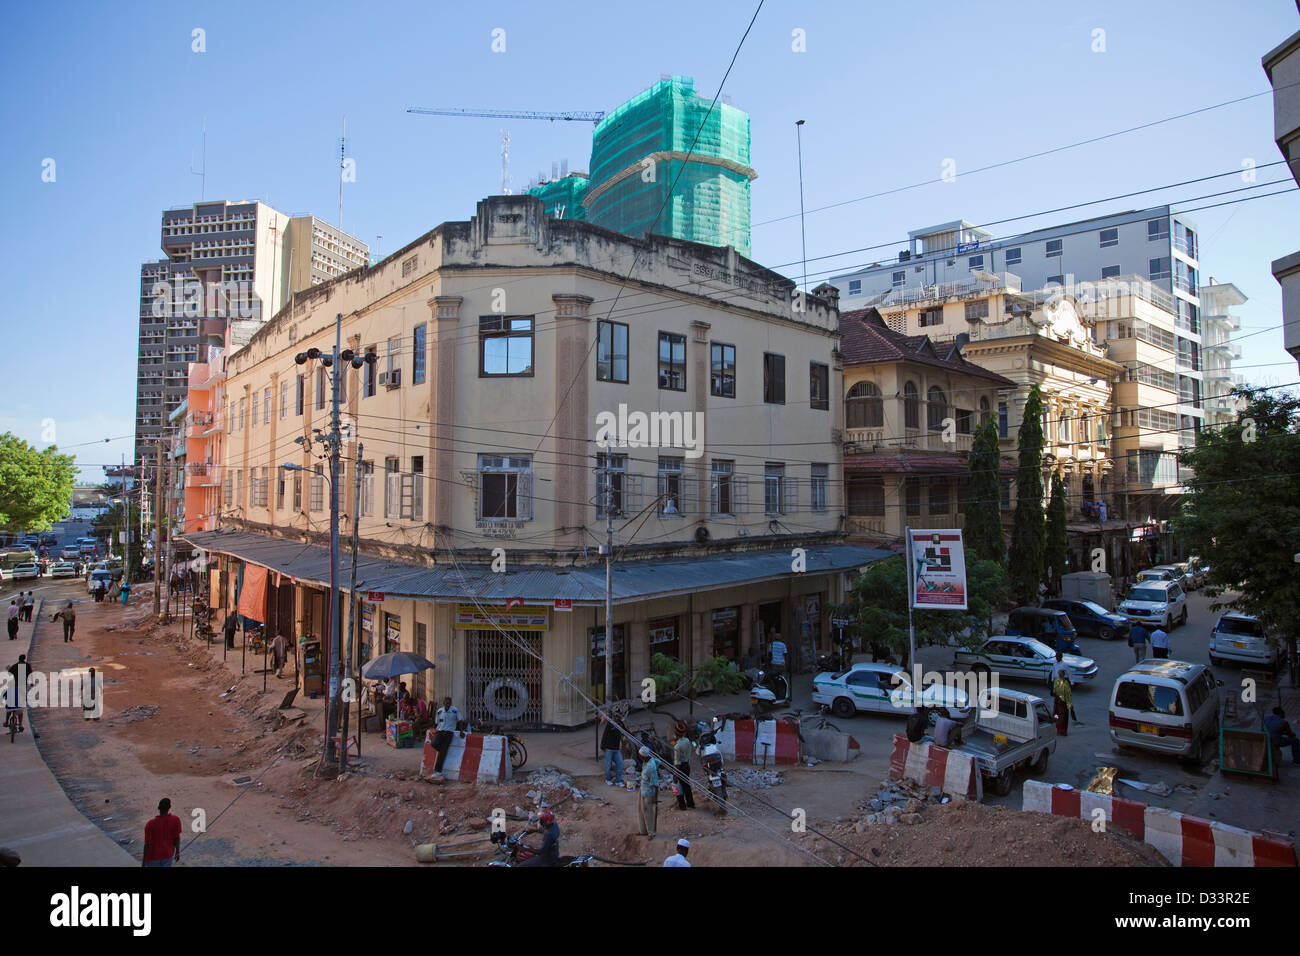 A 1930s Indian built house in downtown Dar es Salaam with modern hi-rise construction in background, Tanzania. - Stock Image